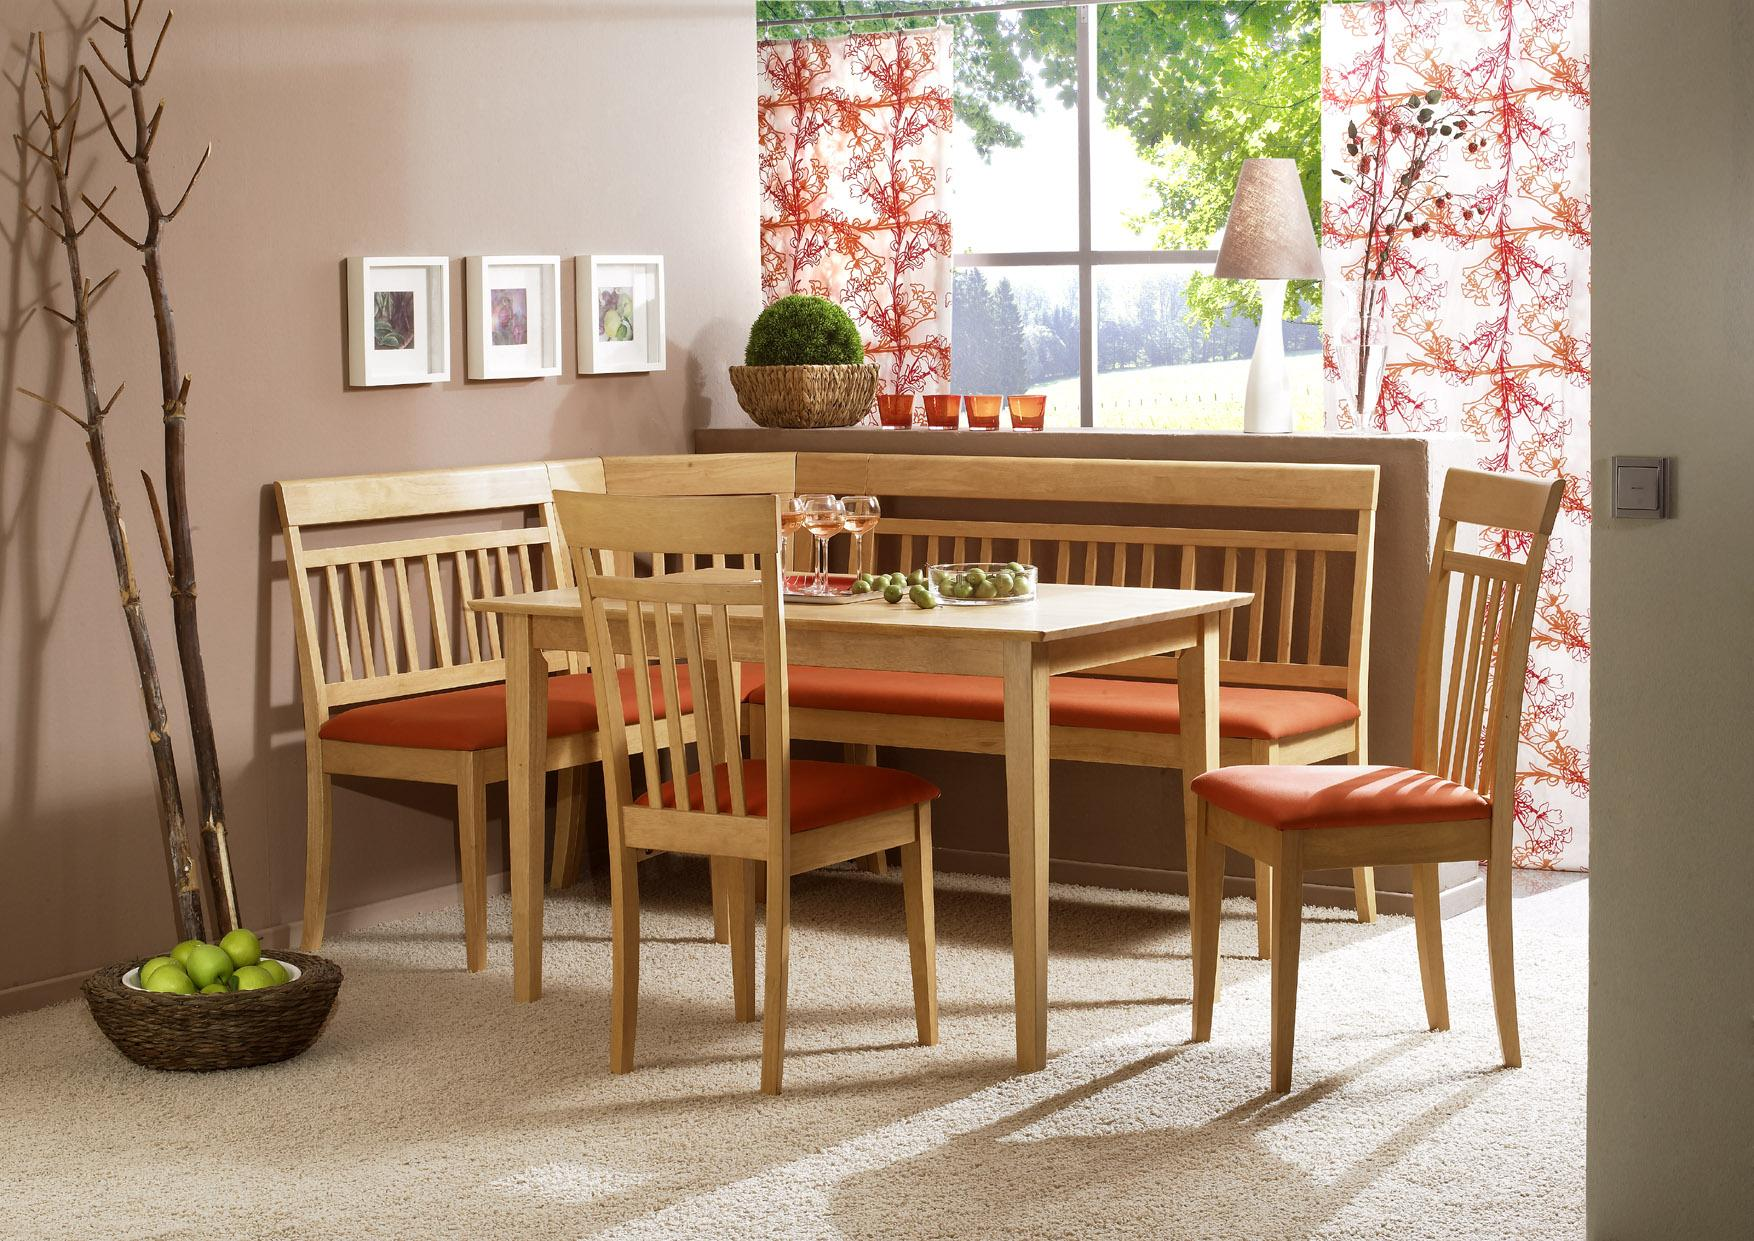 Dining Room Table With Corner Bench Seat - Table Designs